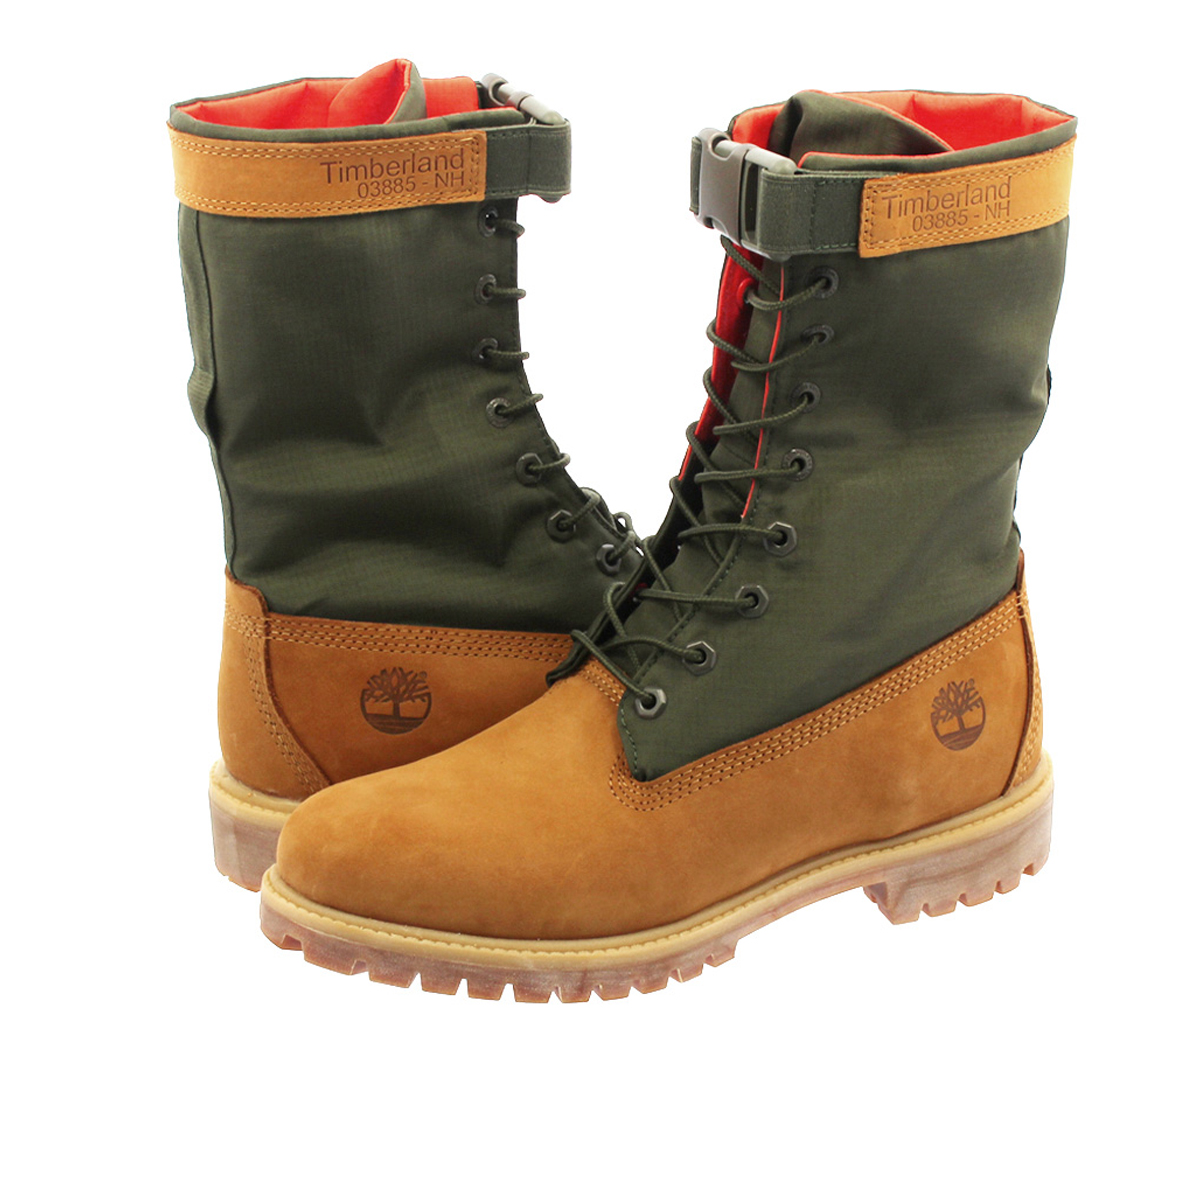 6 inches of Timberland premium gay terboots Timberland 6 In Premium Gaiter Boot A1QY8